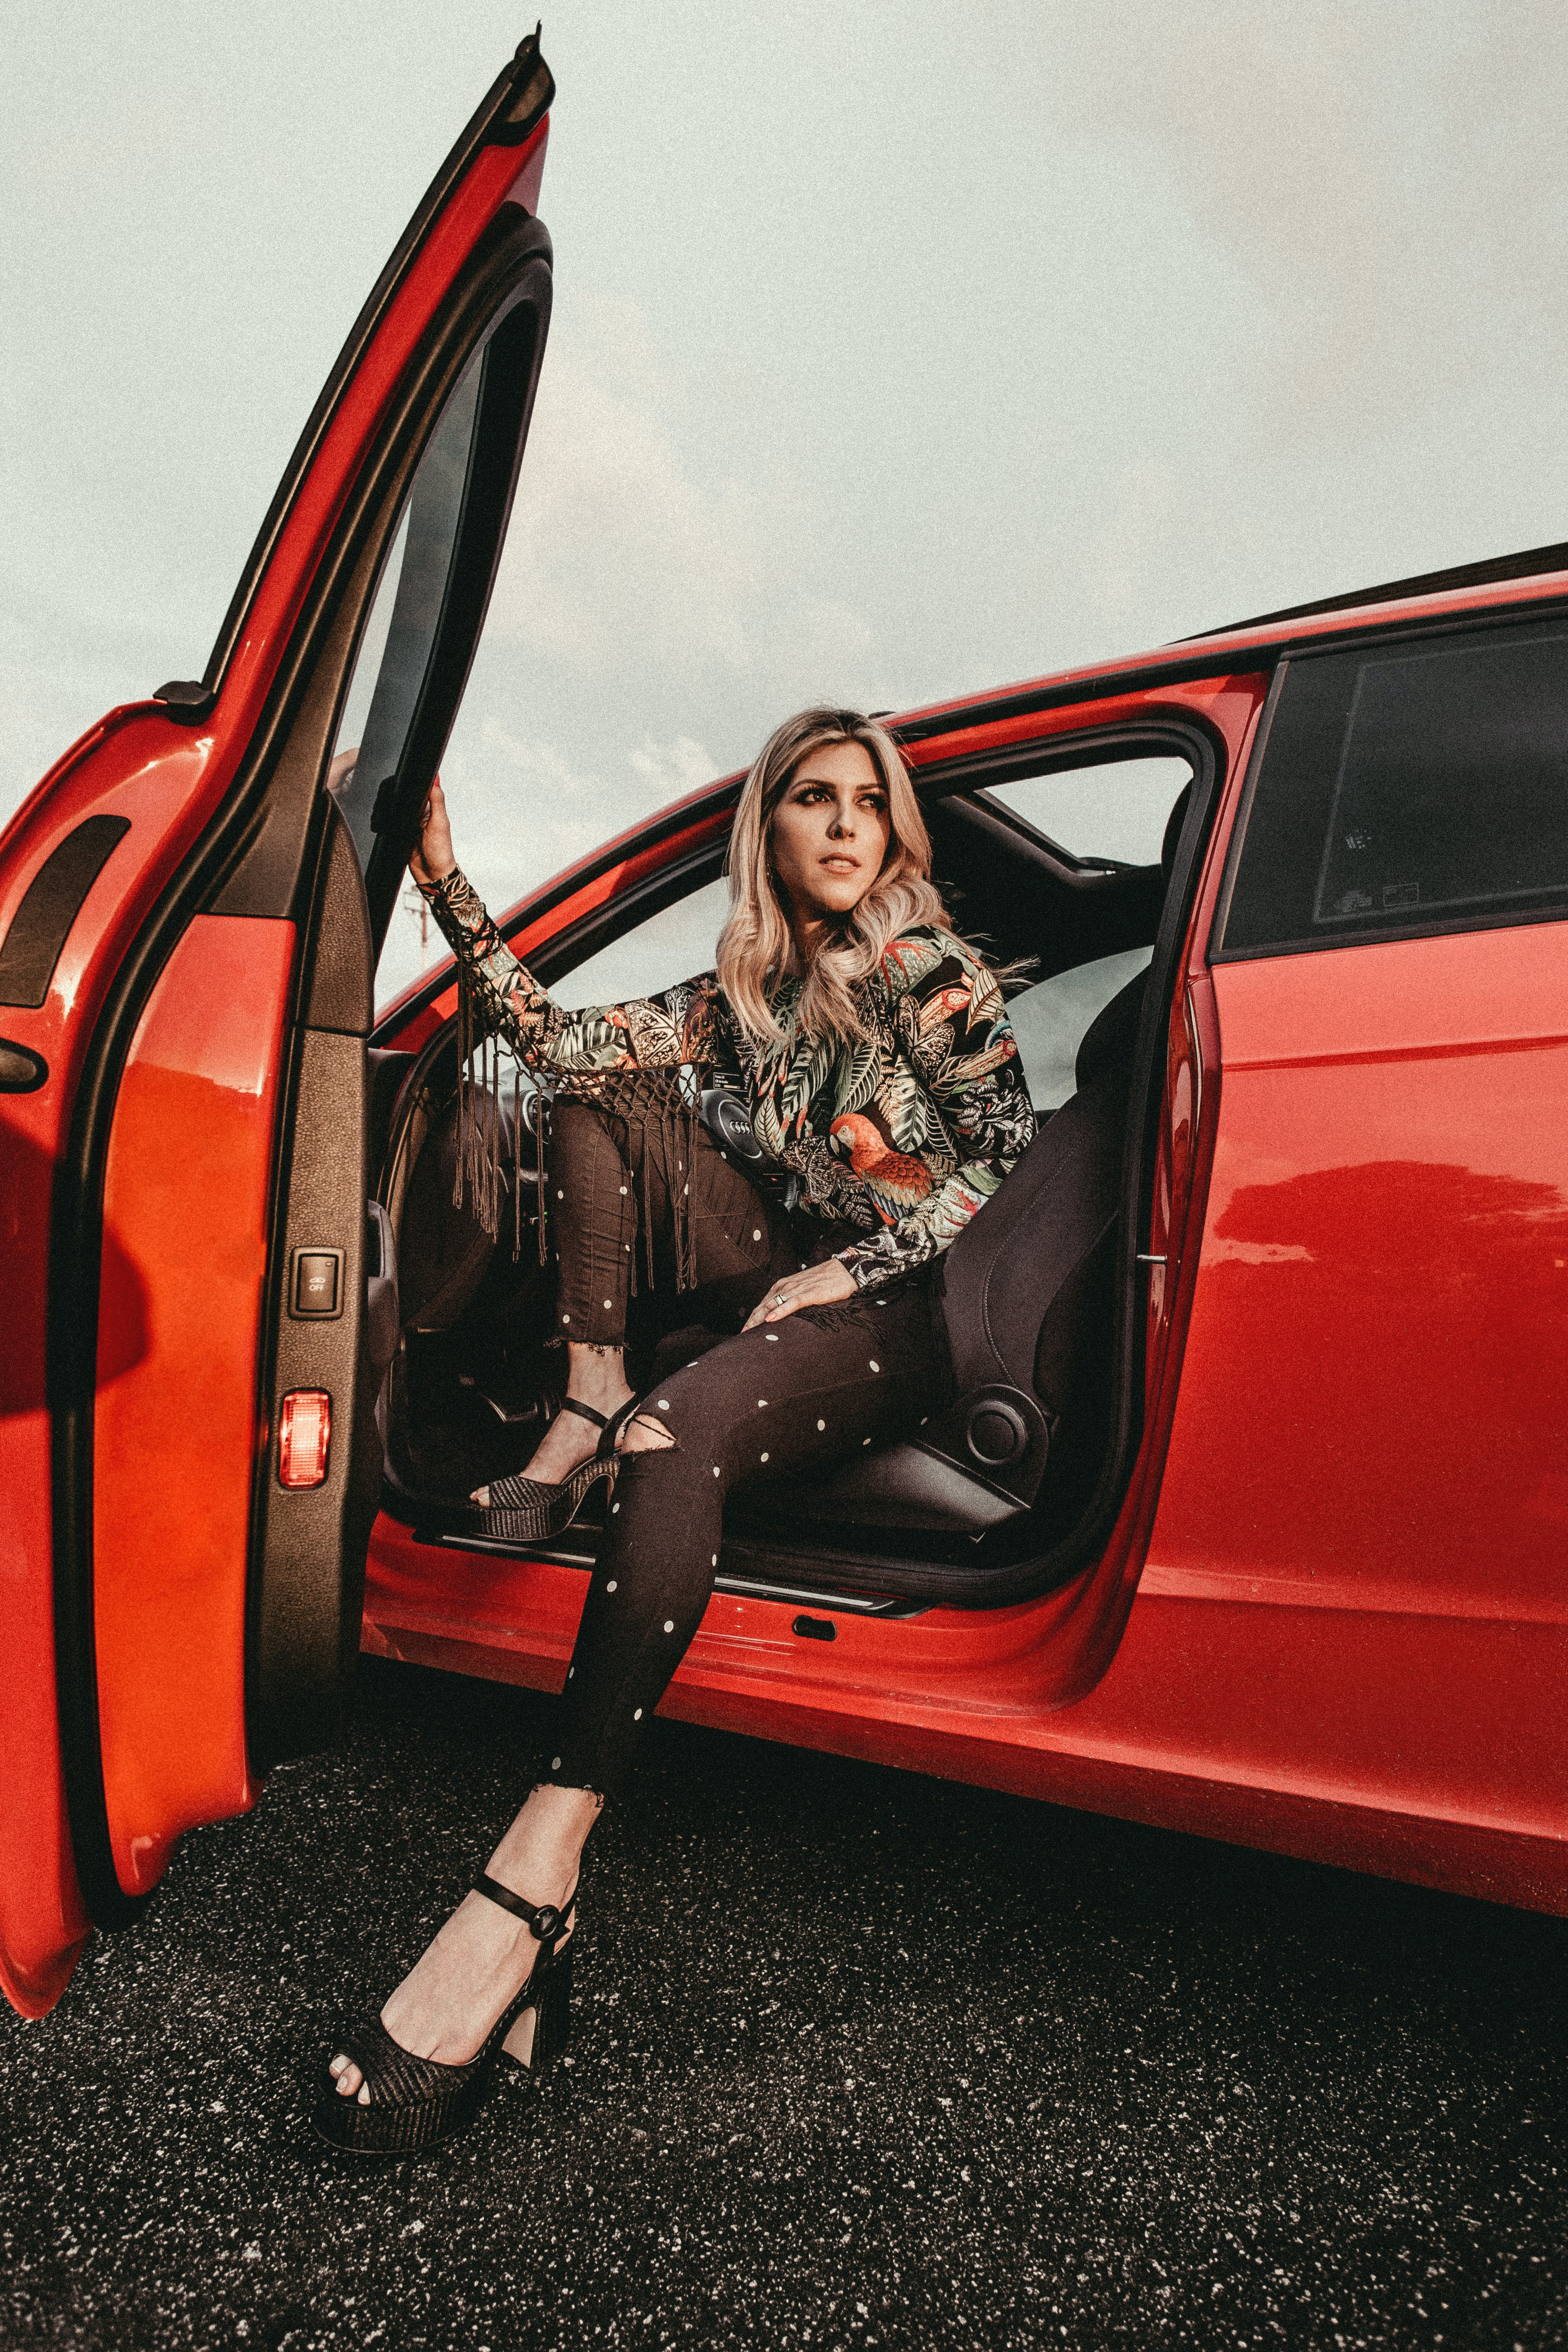 woman in black pants sitting on driver's seat